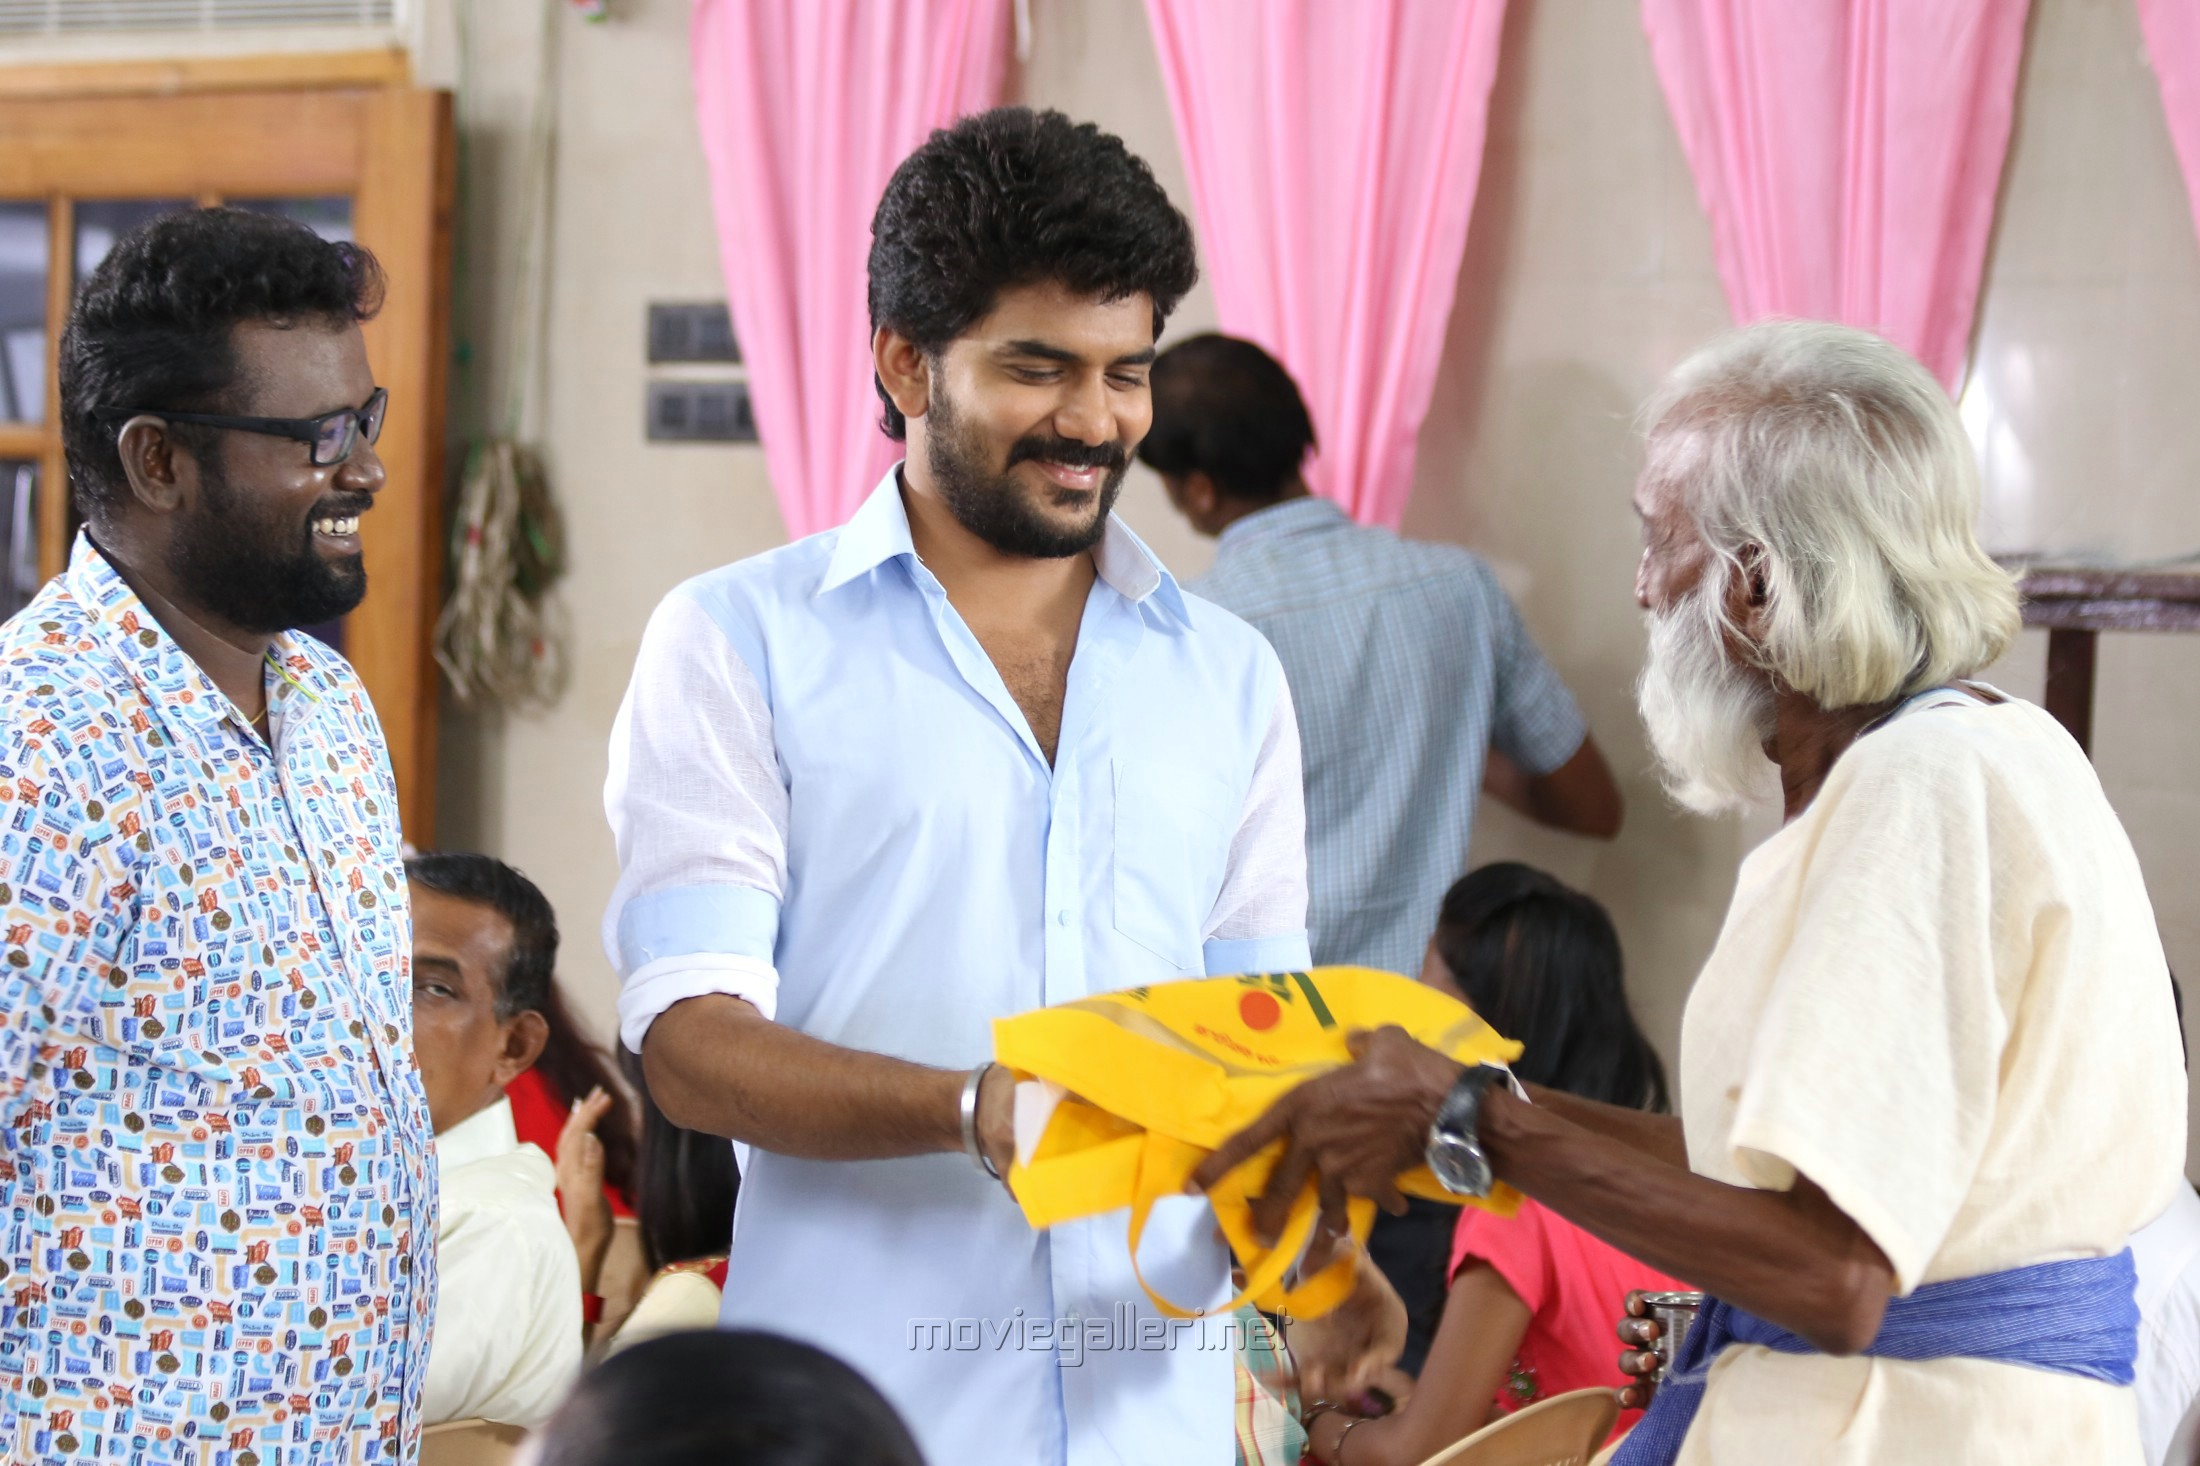 Arunraja Kamaraj, Kavin, Rahul Thatha in Natpuna Ennanu Theriyuma Movie Stills HD